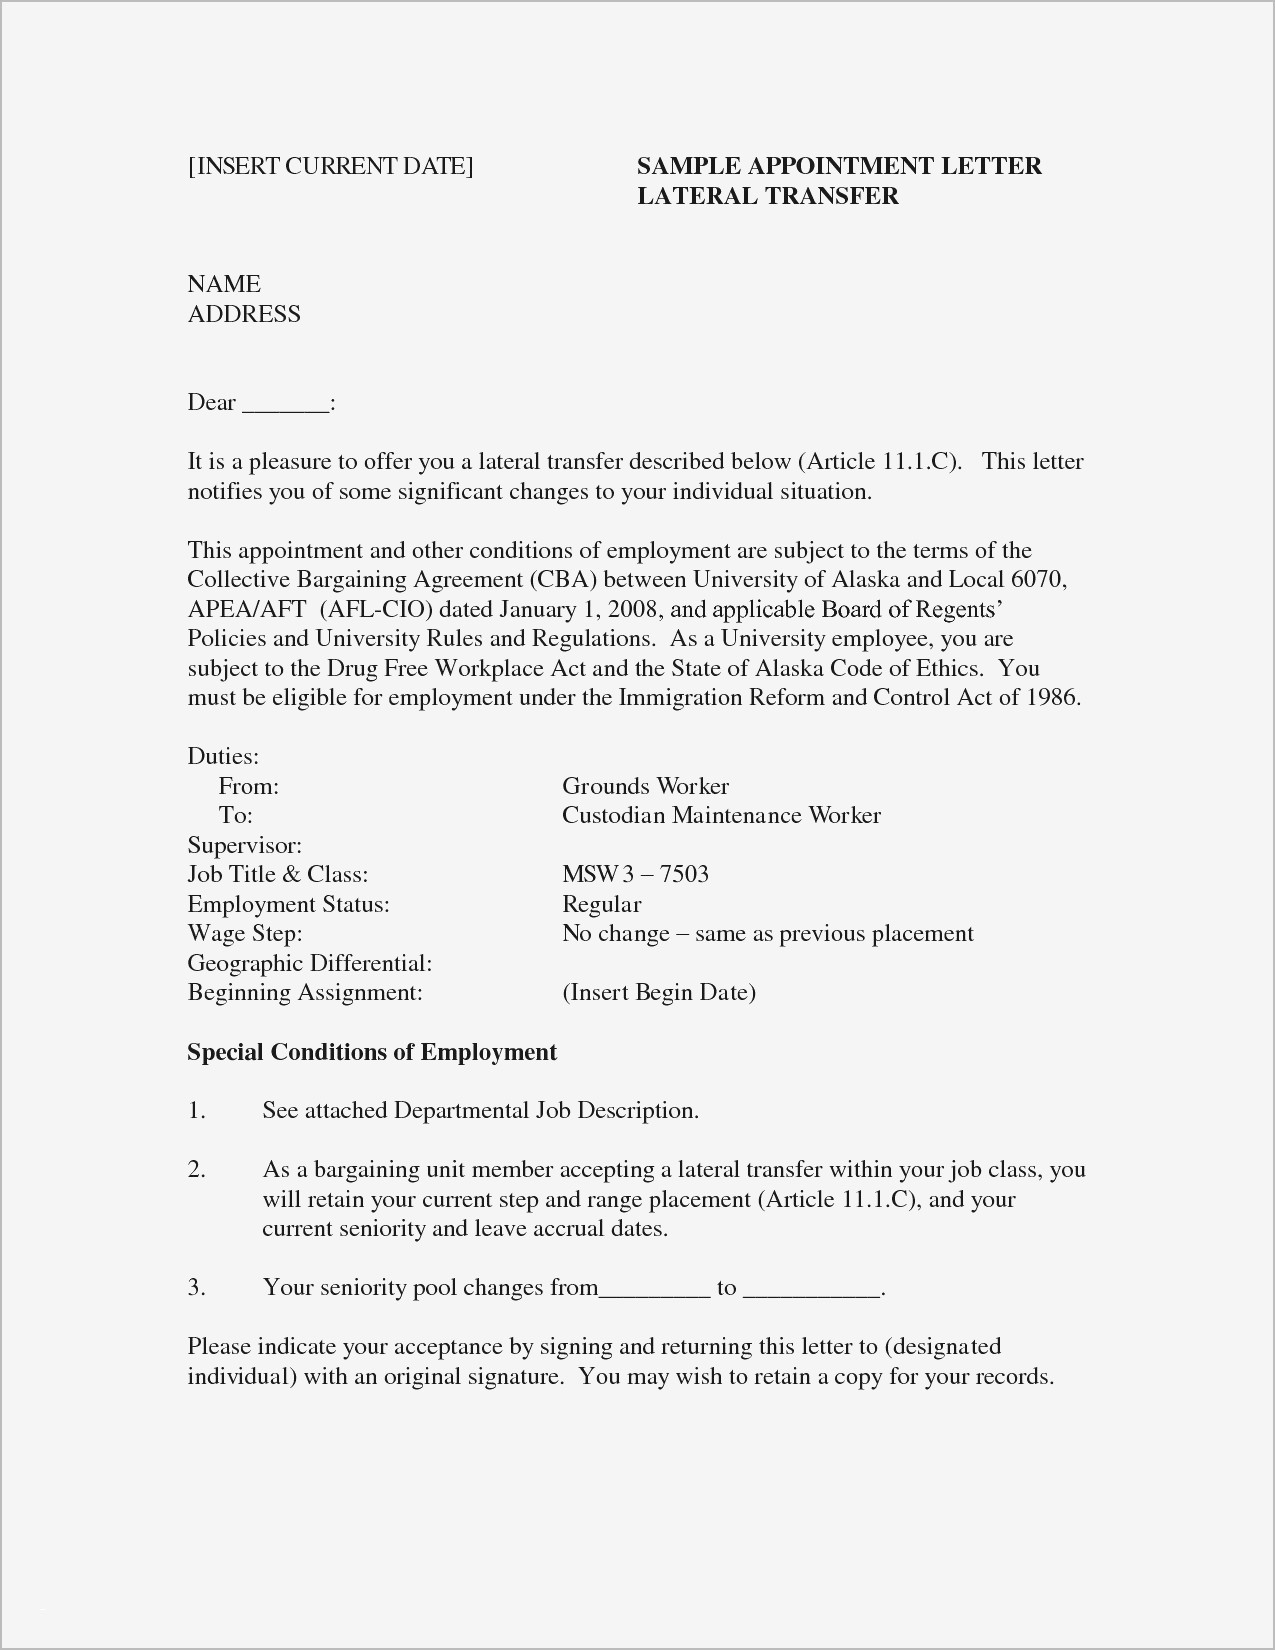 Good Headline for Resume - Rofessional Summary Resume Best Summary Examples for Resume